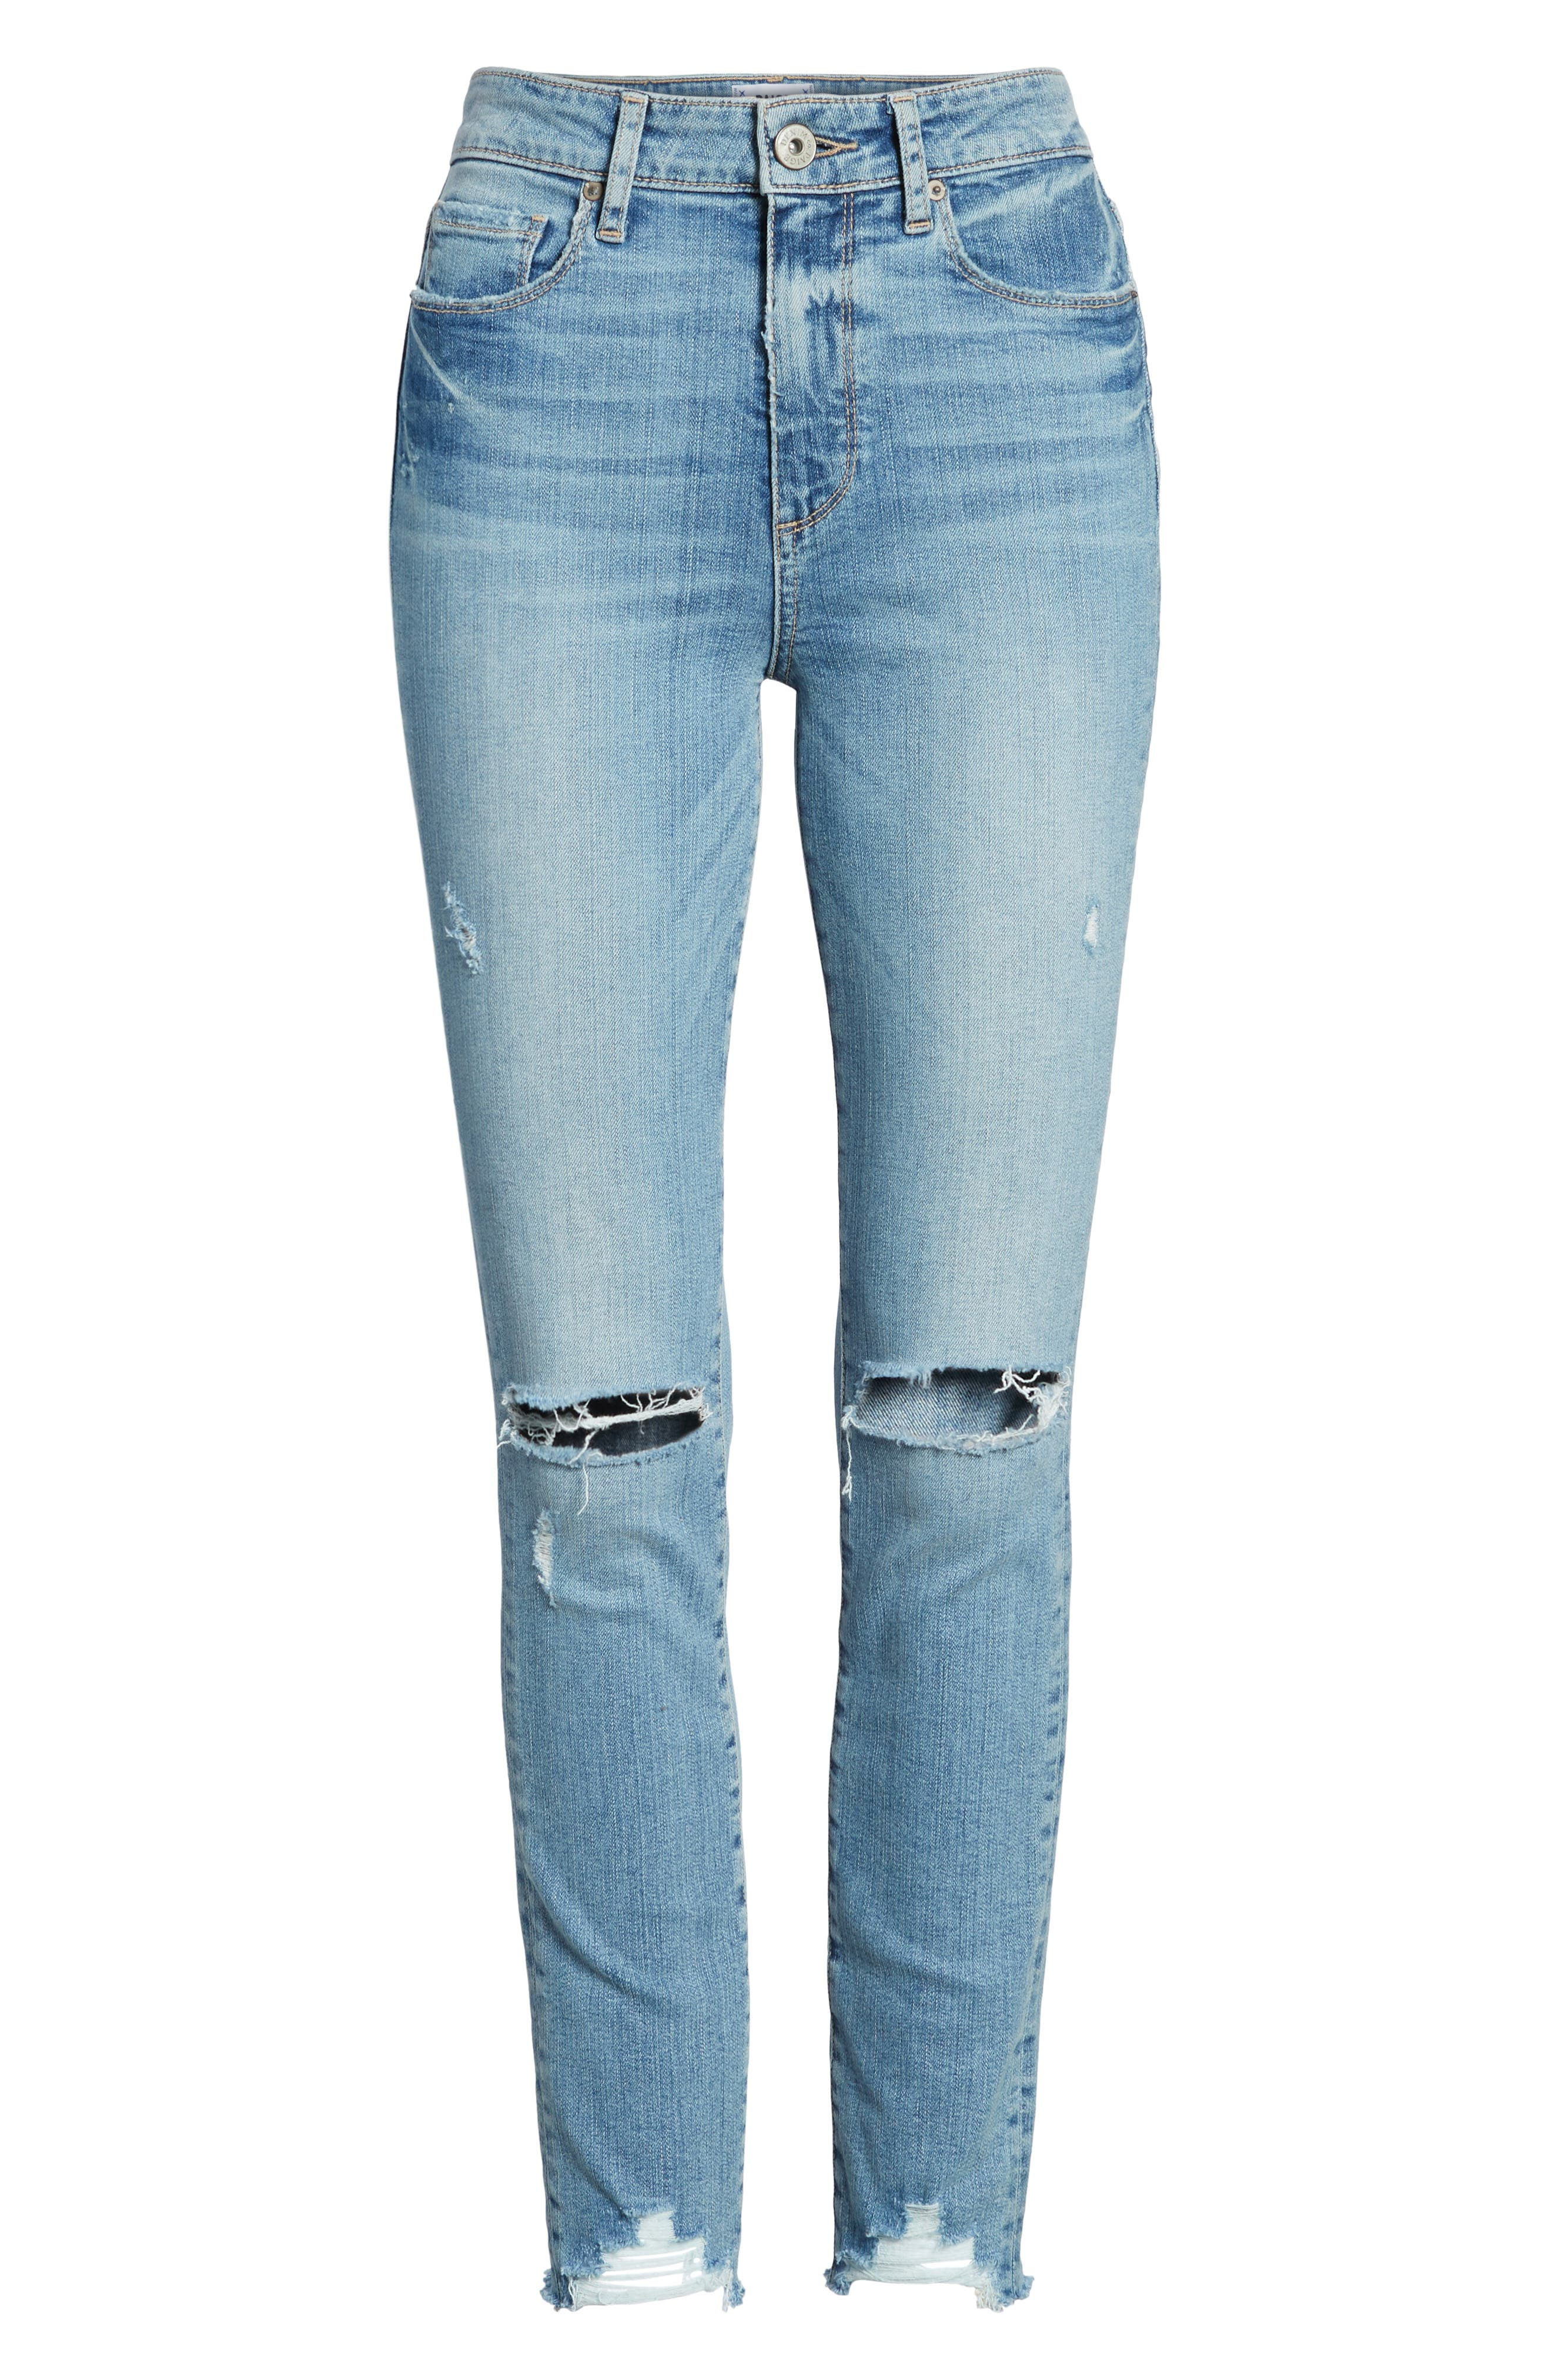 Hoxton High Waist Ankle Skinny Jeans,                             Alternate thumbnail 6, color,                             Janis Destructed